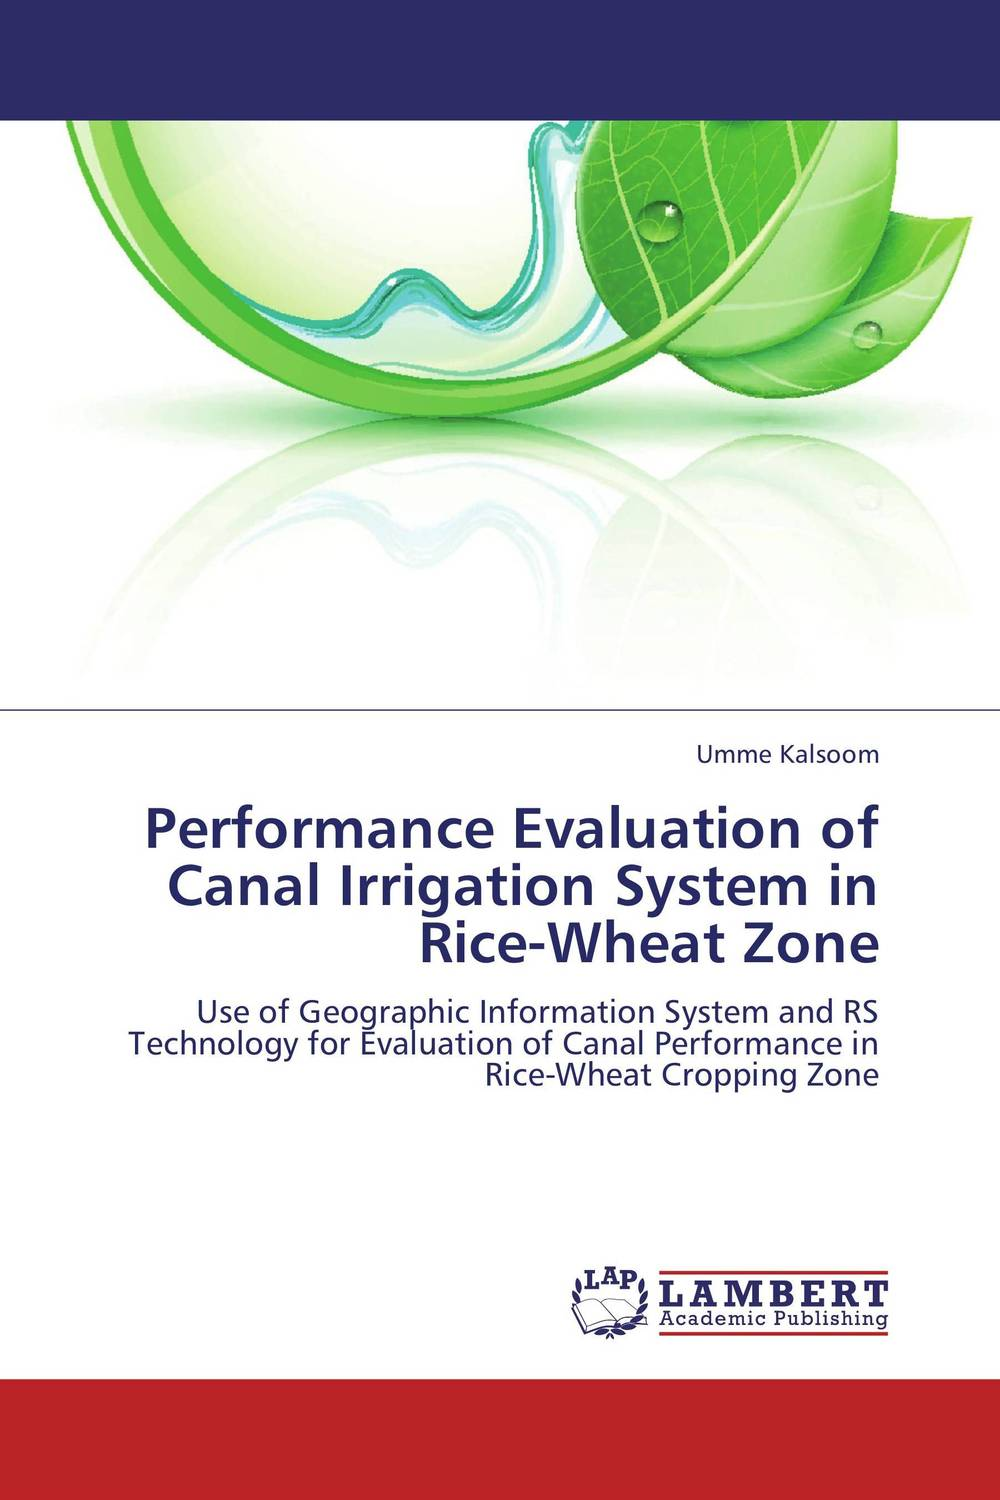 Performance Evaluation of Canal Irrigation System in Rice-Wheat Zone design and evaluation of microemulsion gel system of nadifloxacin